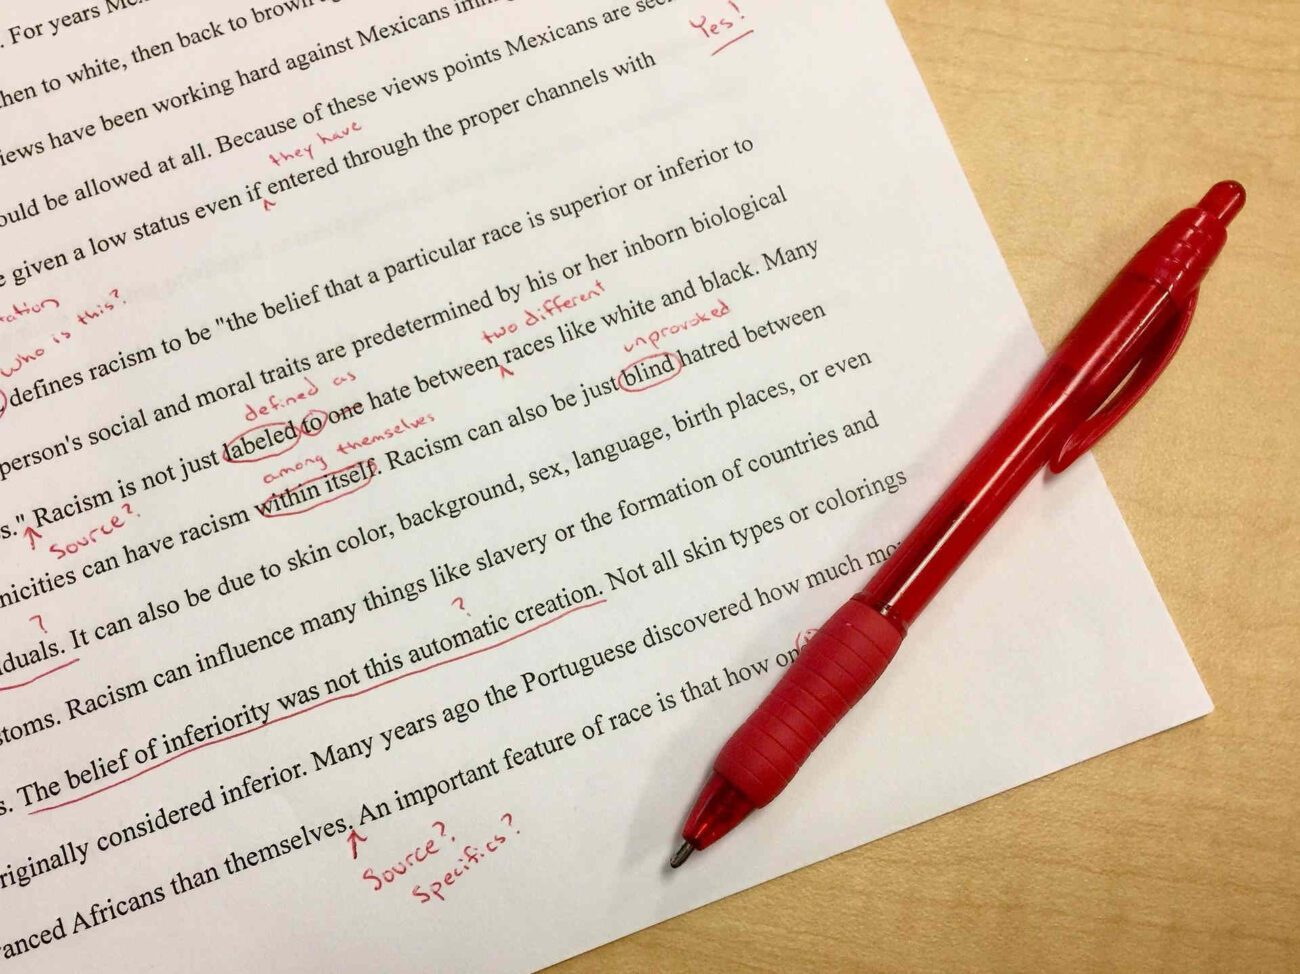 Everyone needs a little help sometimes, especially in school. If you're looking for an essay writing service, you need to know these tips before signing up.